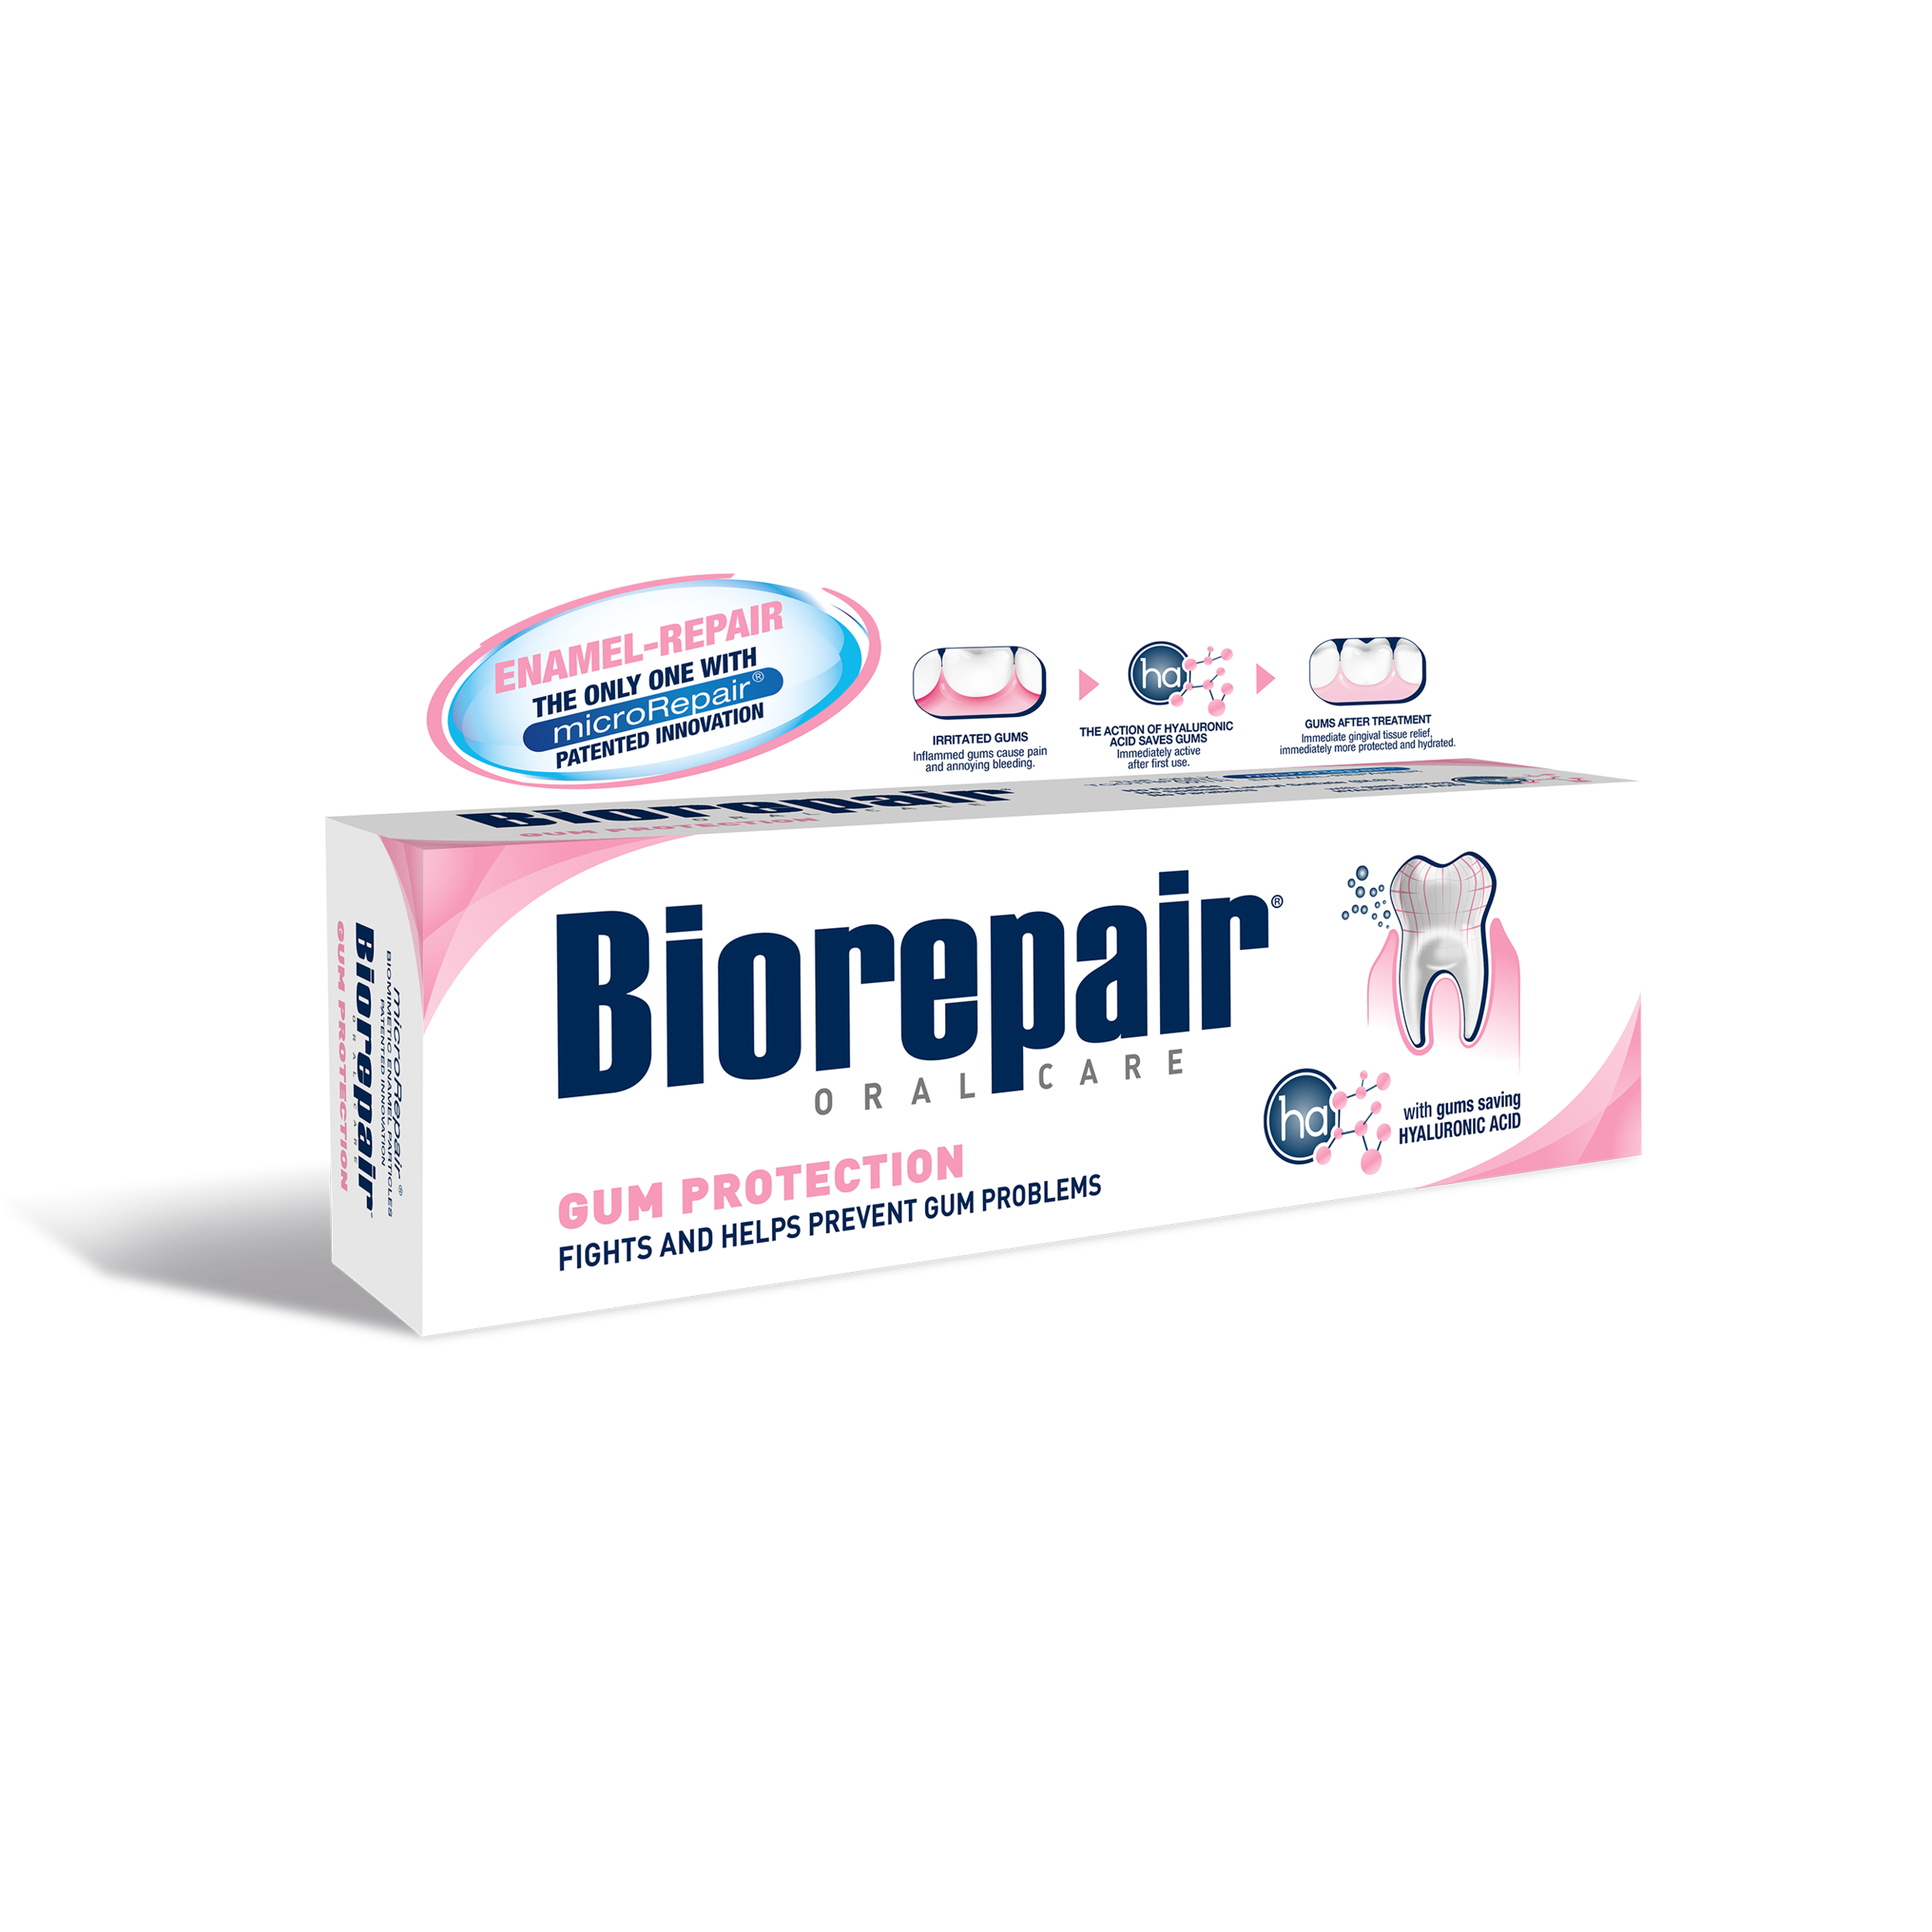 BIOREPAIR - Gums protection 75ml (2019) - GA1542000 - Pack2 (English) - 2500x2500.a.png